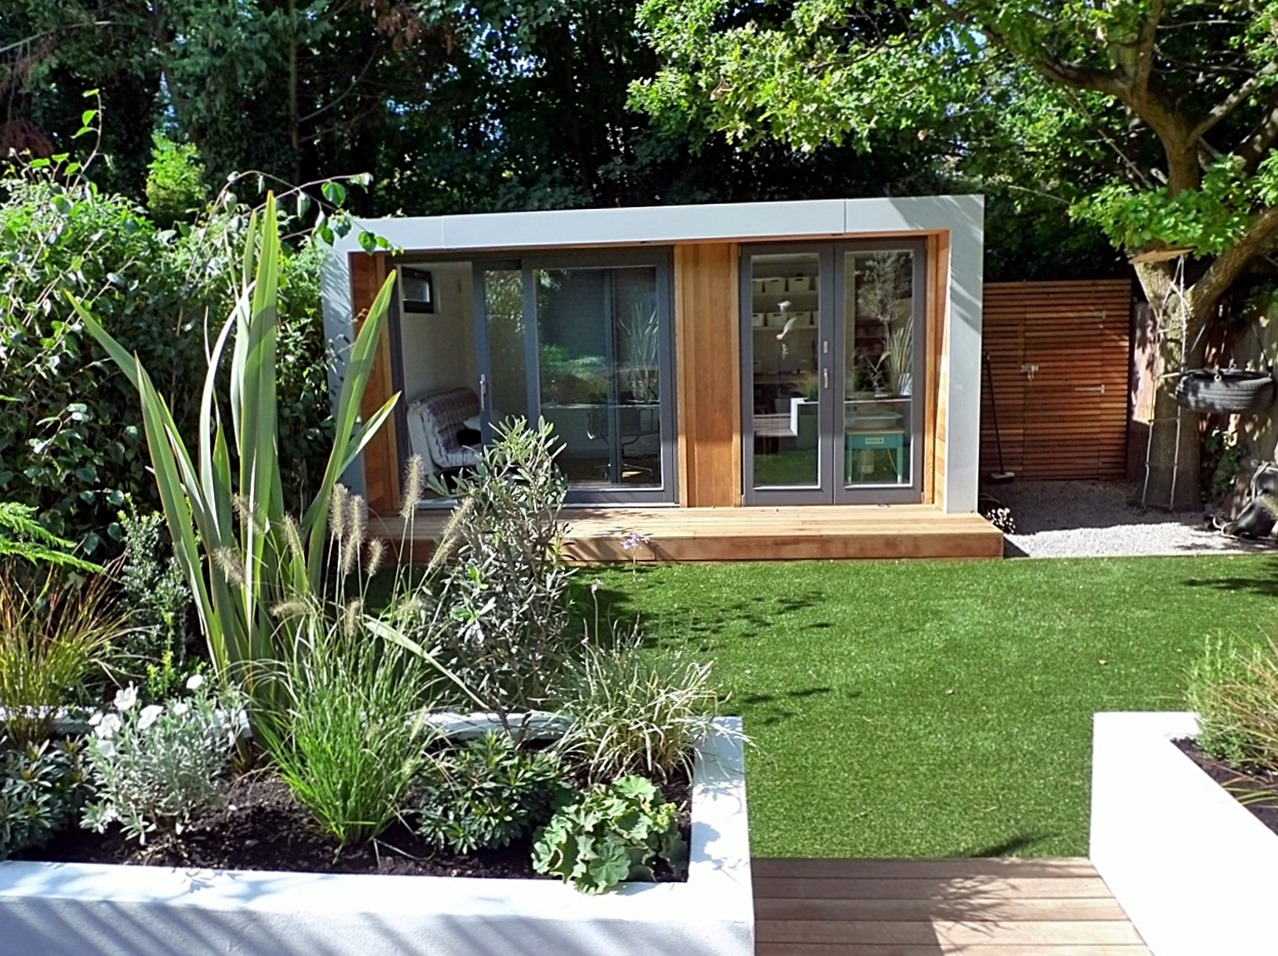 clapham and balham modern garden design decking planting artificial lawn grass hardwood privacy screen indoor outdoor space (11)